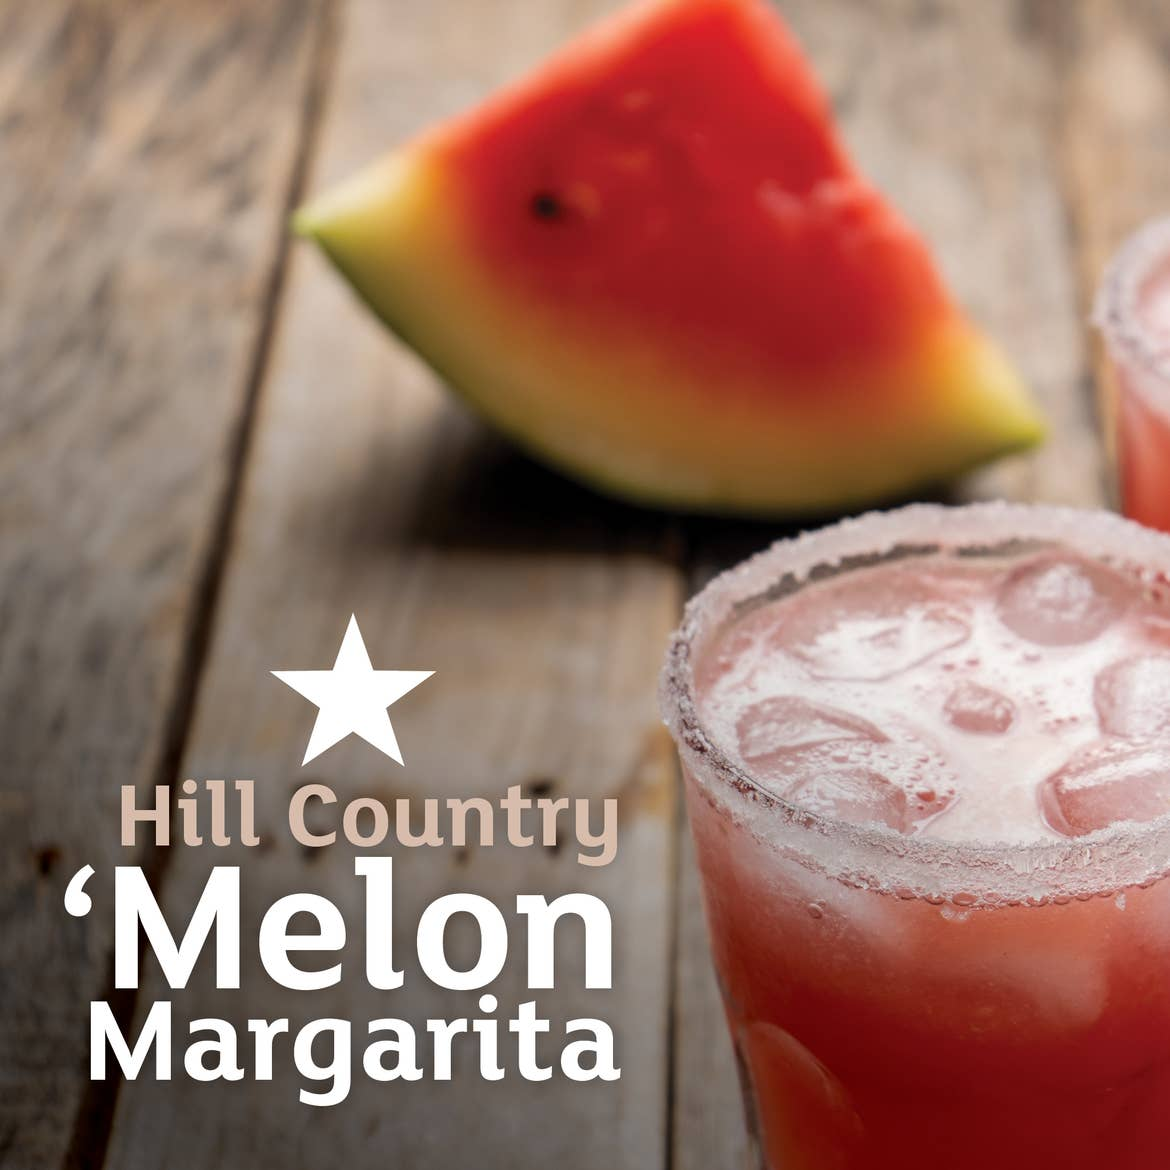 Two glasses of Melon Margaritas sit on a wooden plank table in front of a watermelon wedge. Type on the left says, 'Hill Country 'Melon Margarita.'